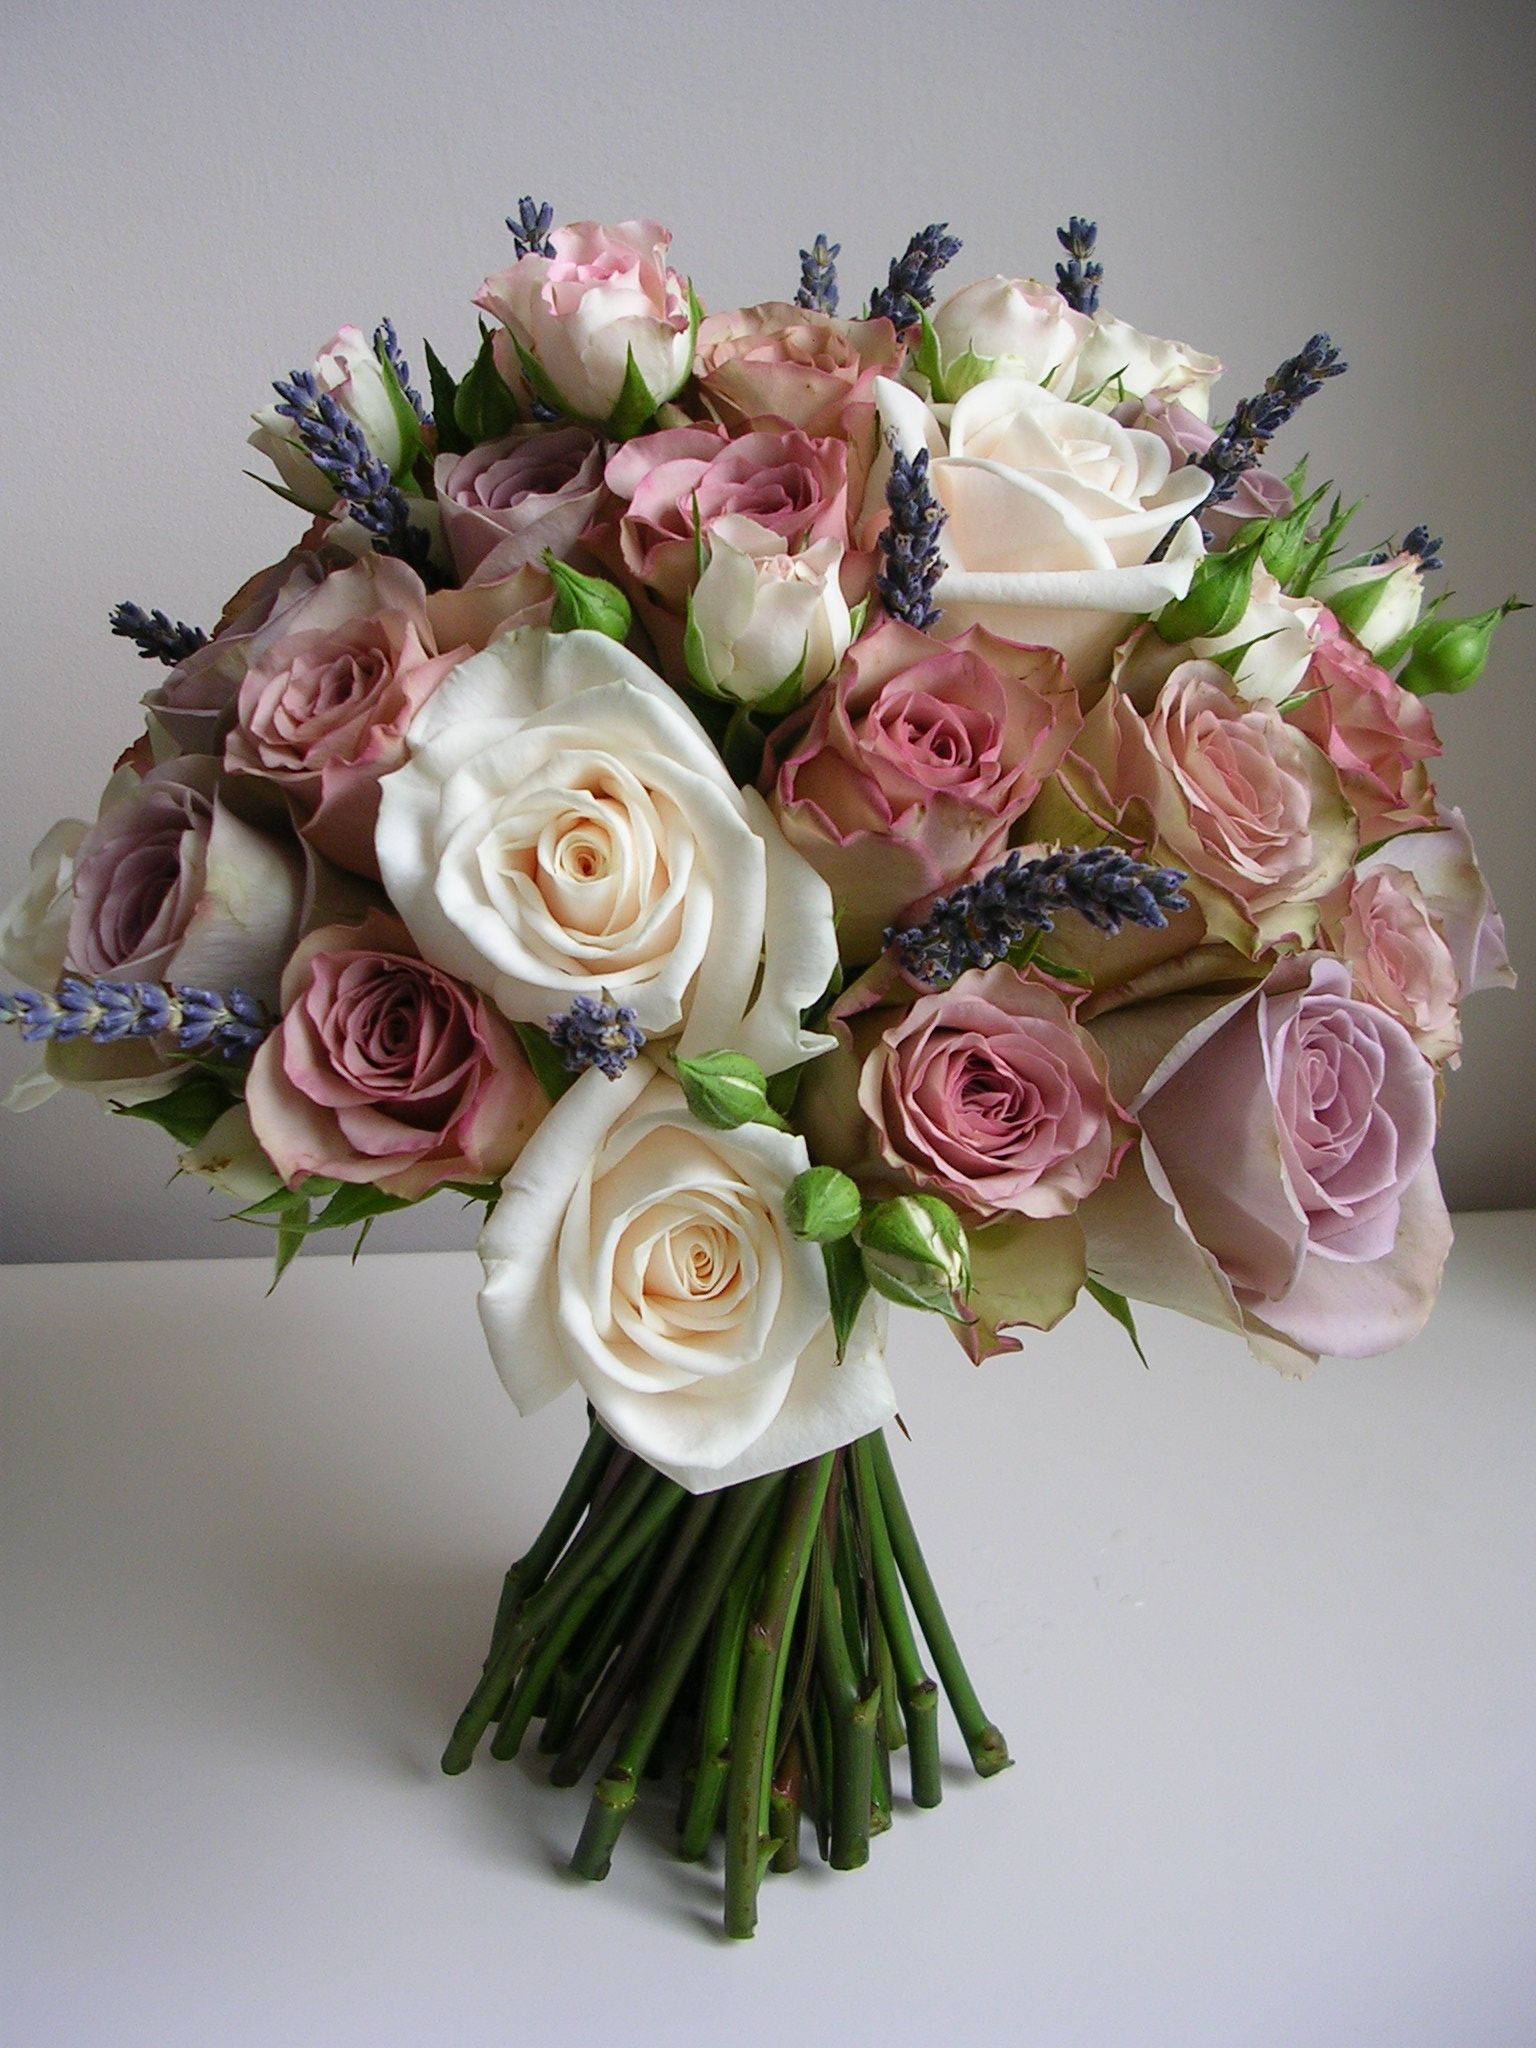 Vinatge Look Handtie Of Dusky Pink Lilac Roses With Cream And Lavander Amnesia